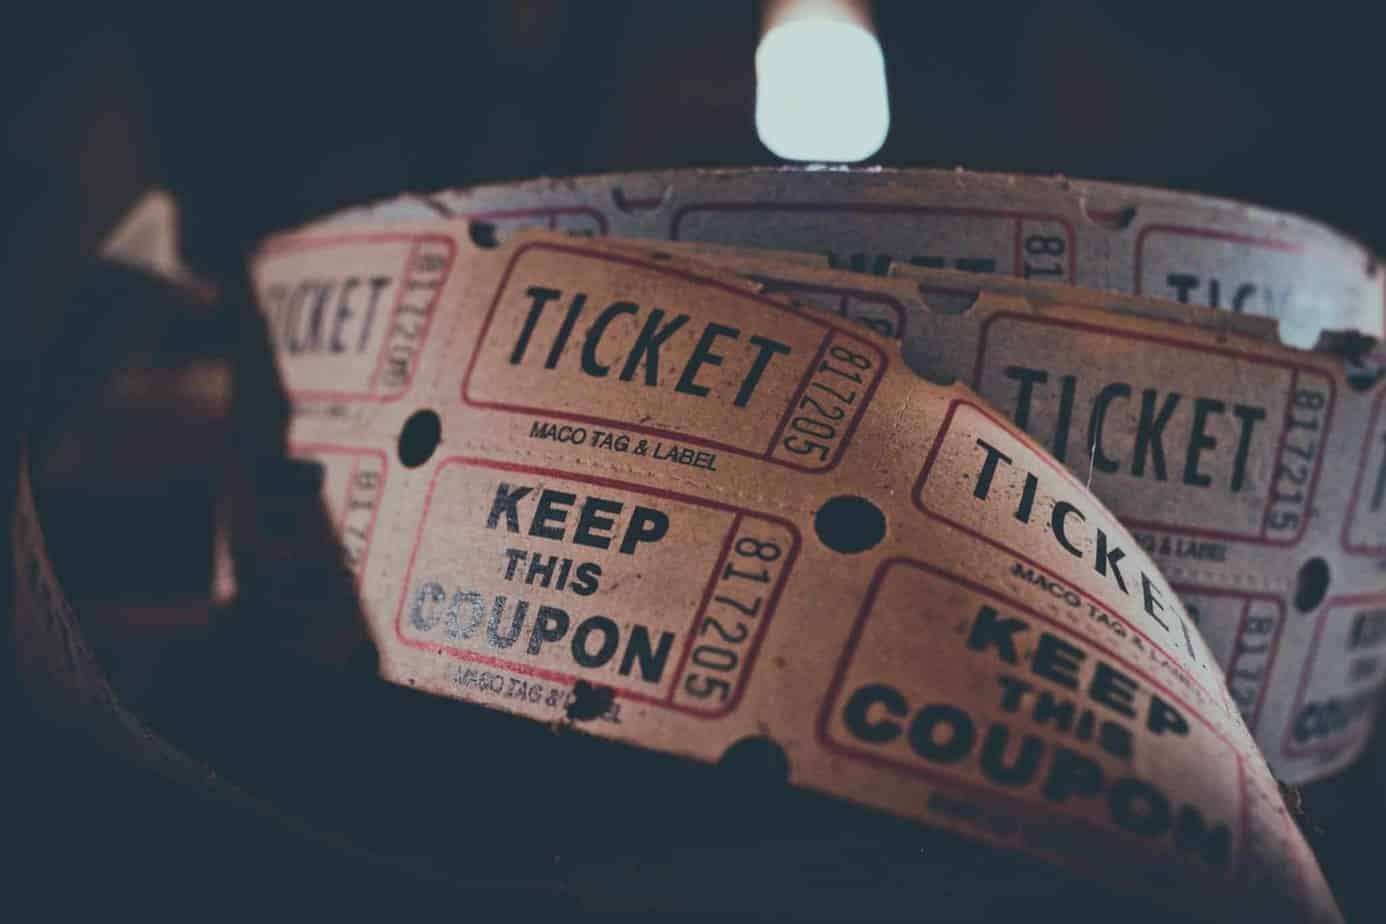 Affiliate Marketing: Promoting High Ticket Affiliate